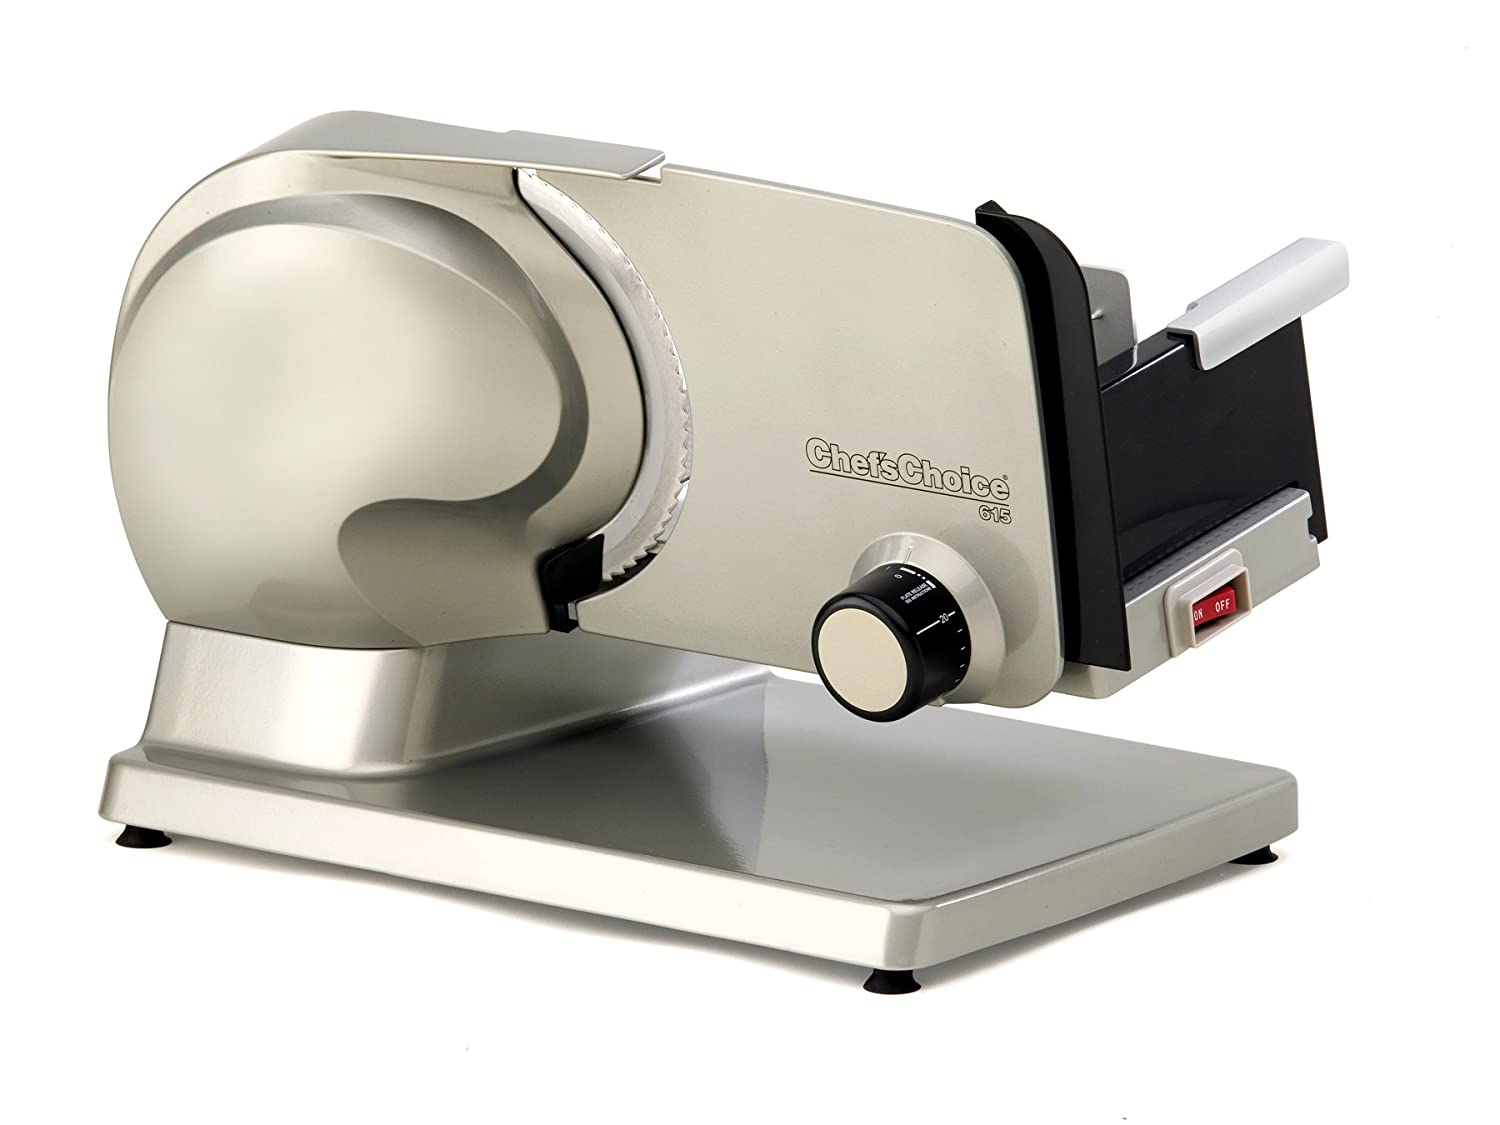 Chef'sChoice 615A Electric Food Slicer Features Precision Slice Thickness Control and Tilted Food Carriage for Fast and Efficient Slicing with Removable Blade for Easy Clean, 7-Inch, Gray Chef'sChoice